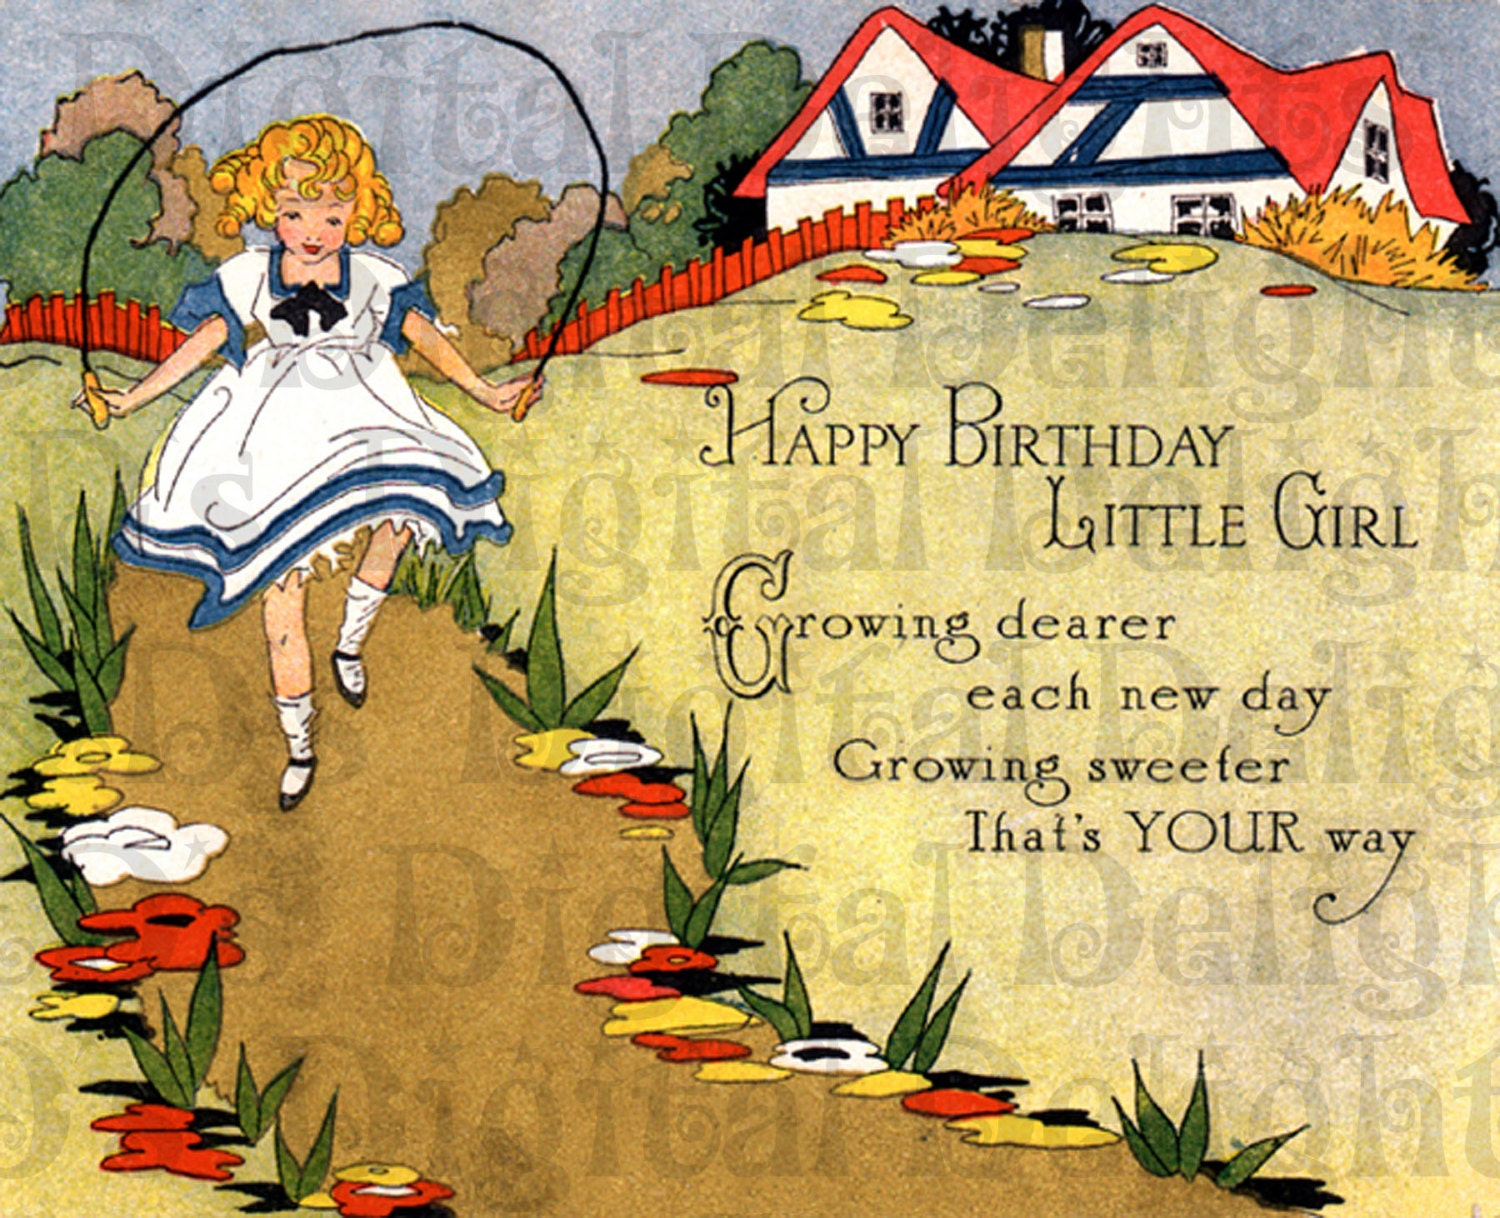 Best birthday card ever for little girl art deco birthday zoom kristyandbryce Image collections